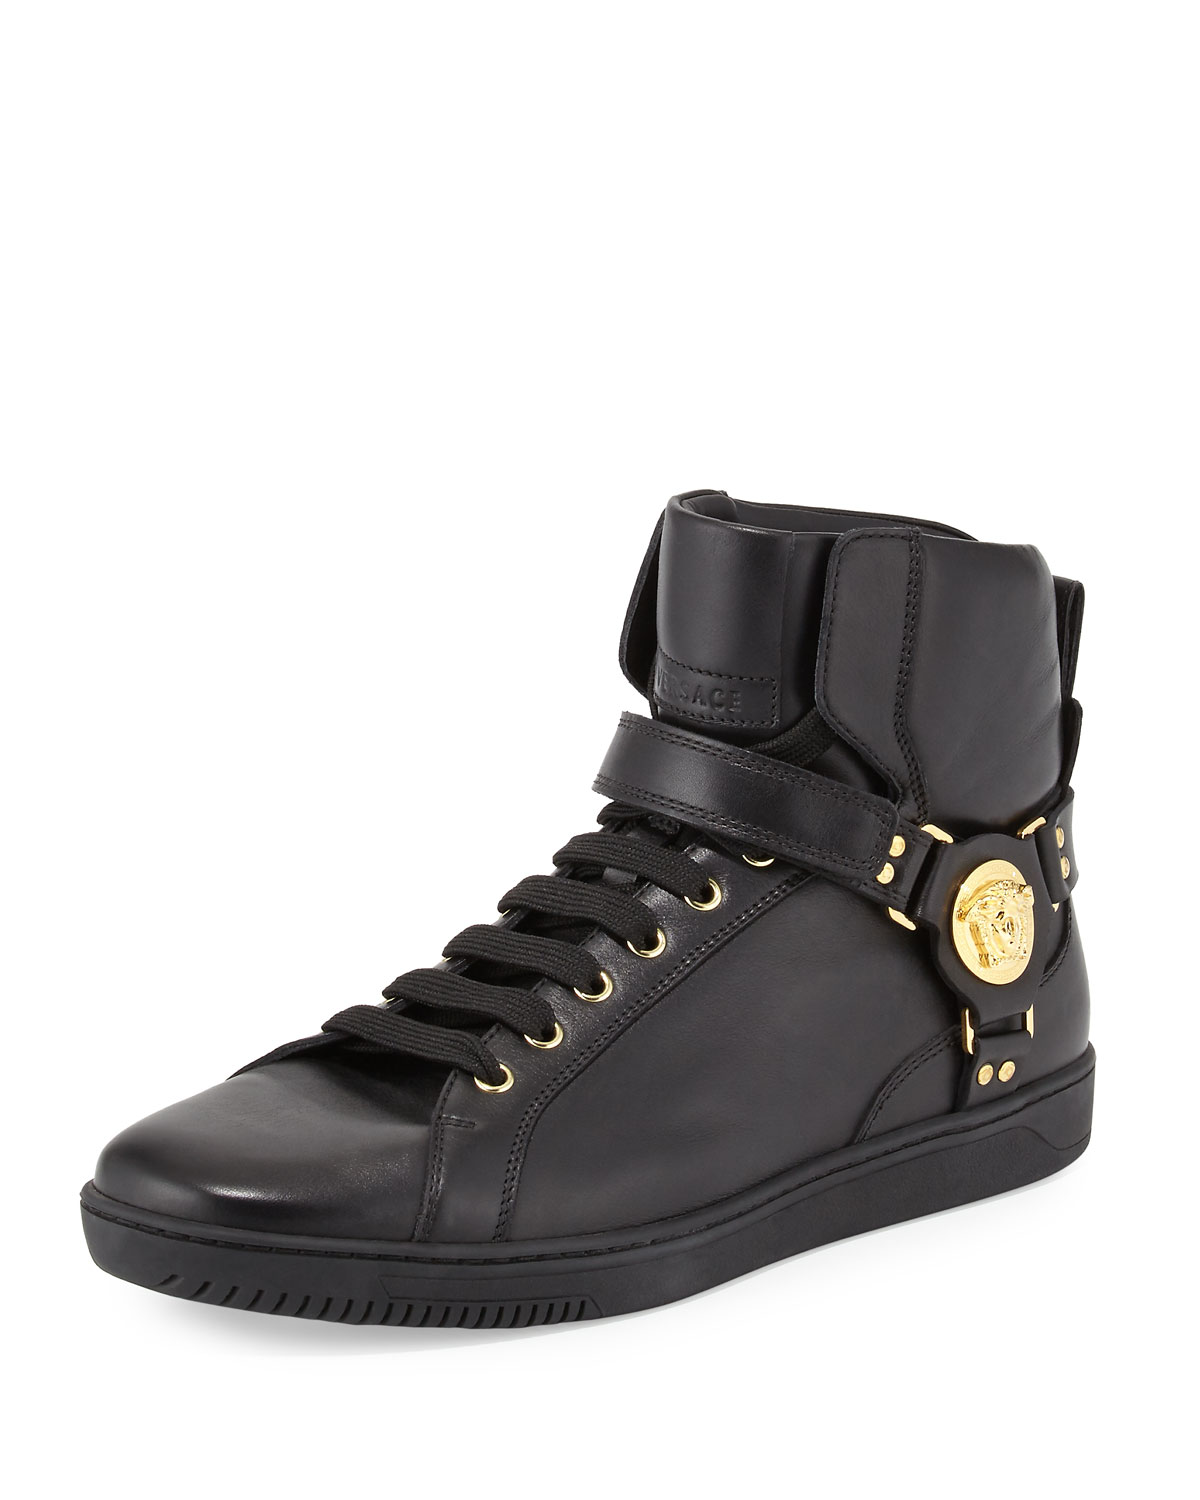 Versace Leather High-Top Sneaker with Gold Medallion